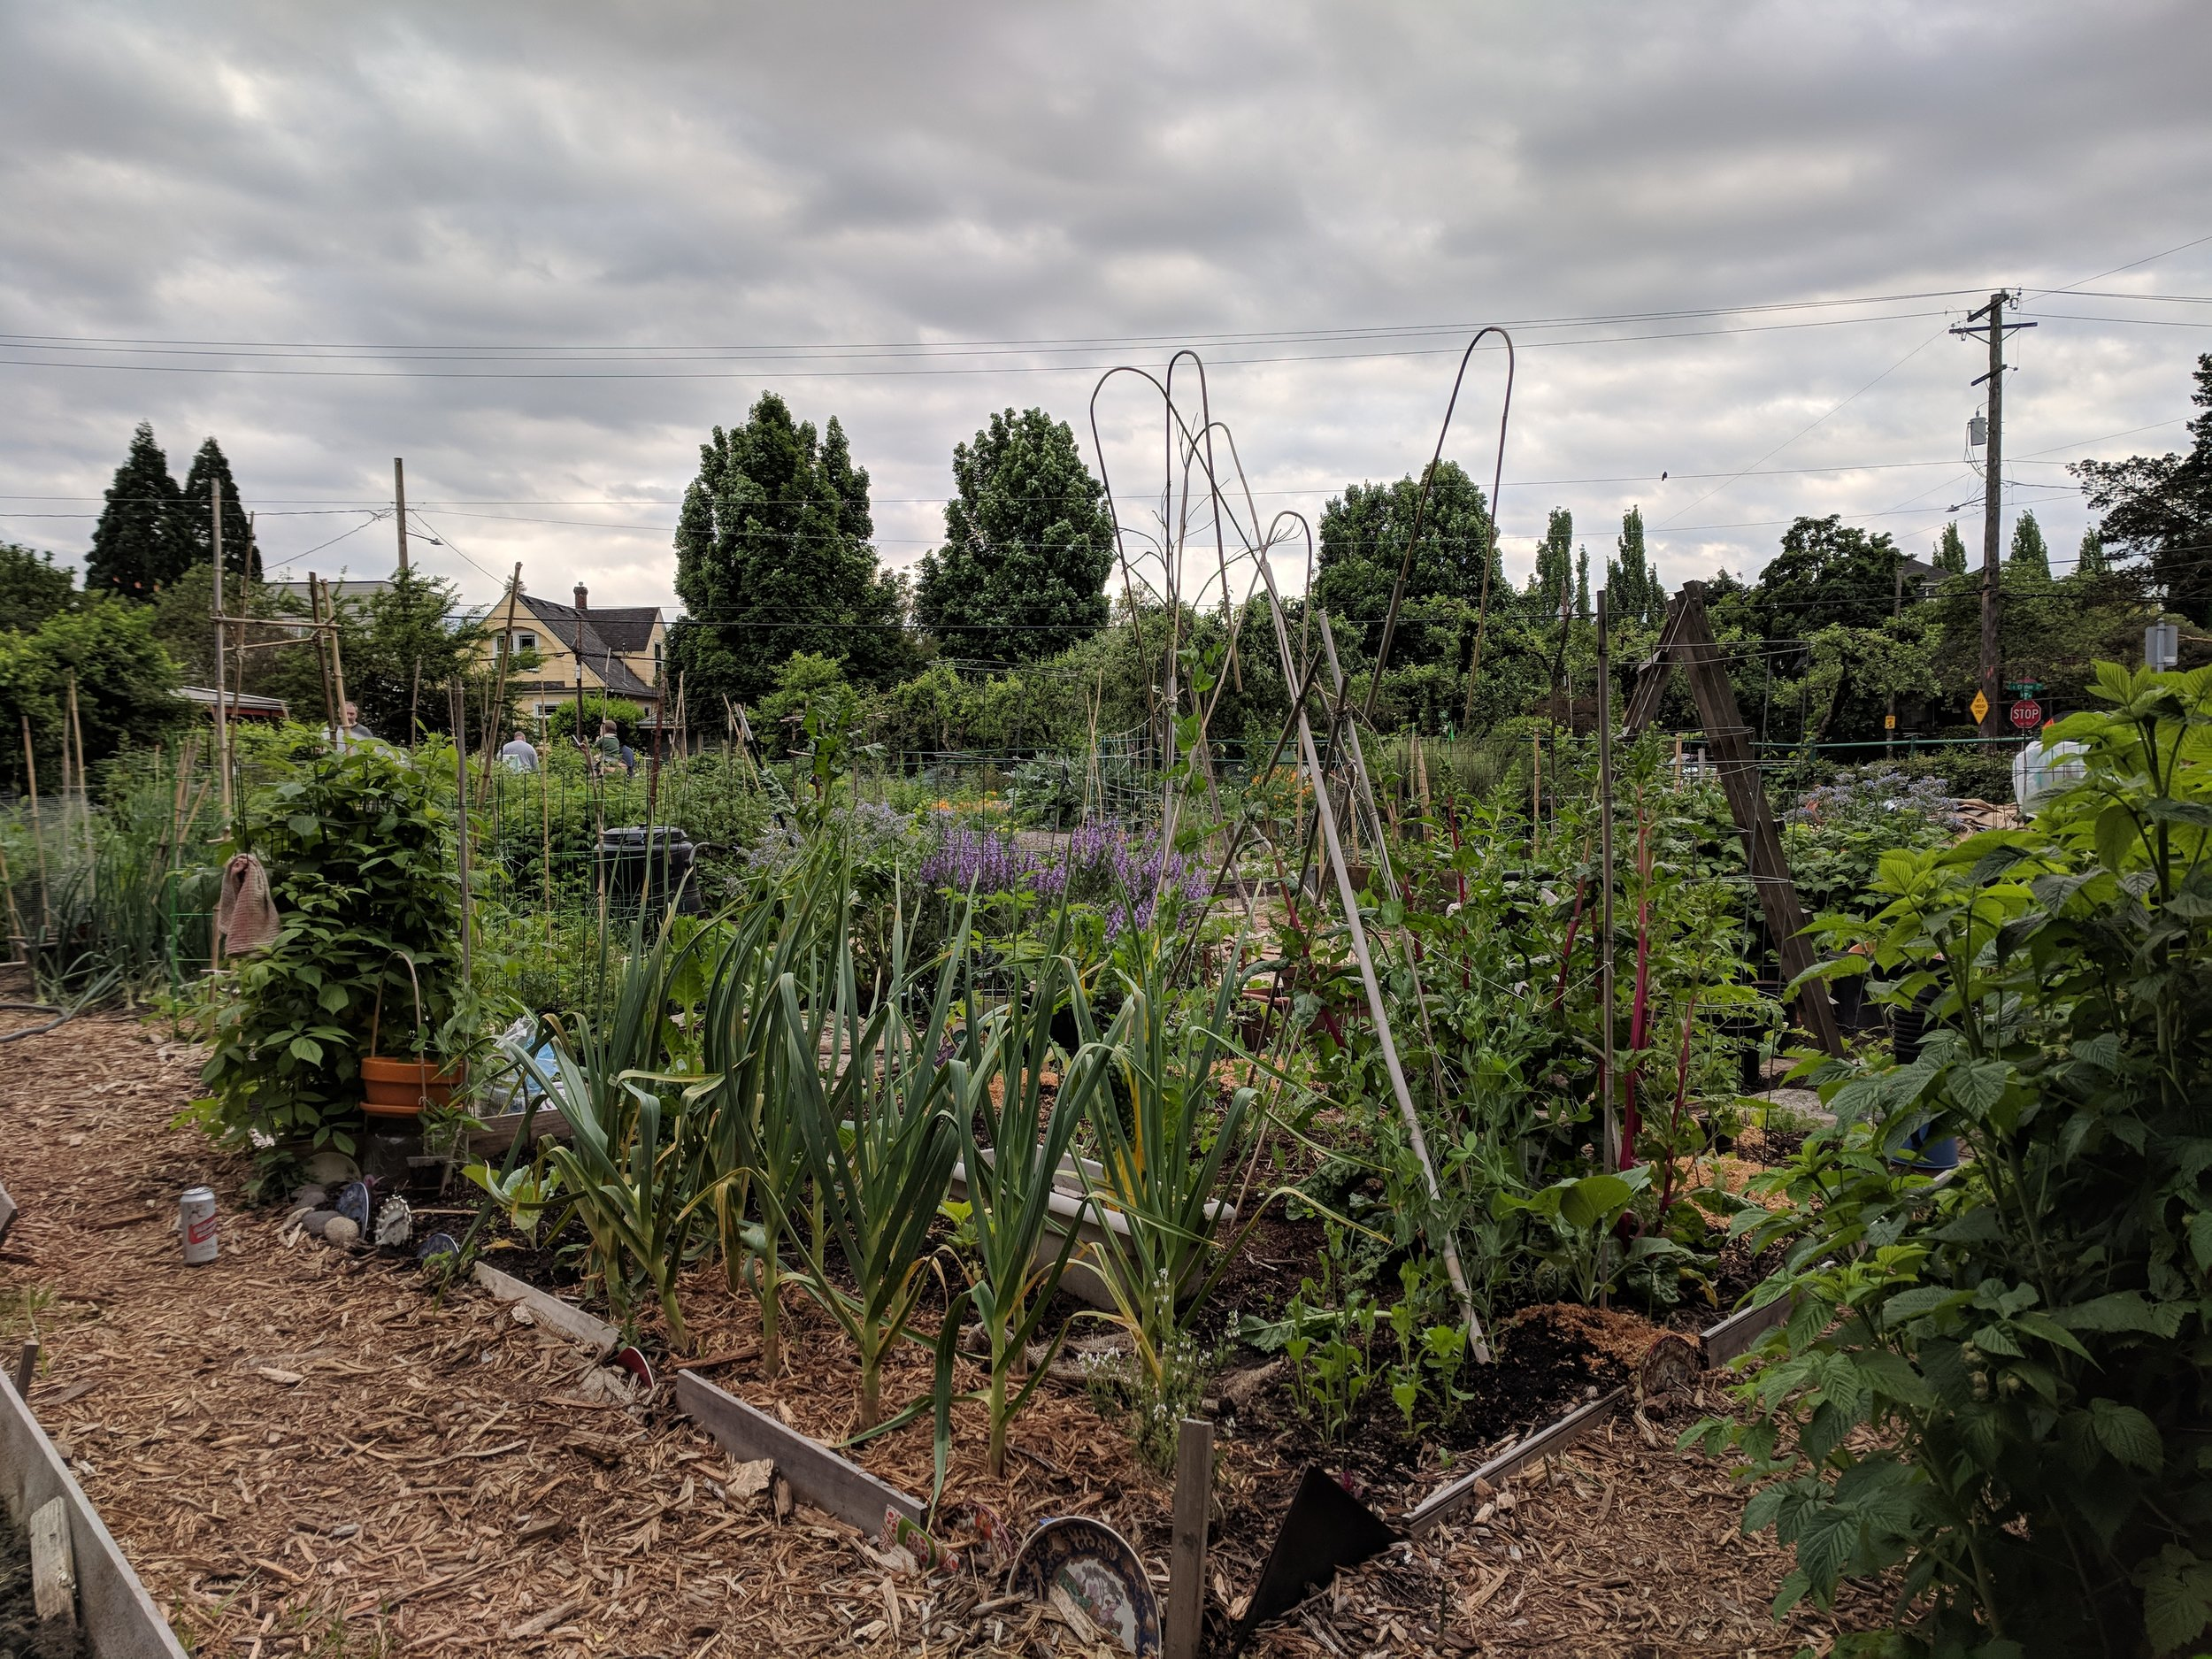 Our community garden plot in mid-May 2018